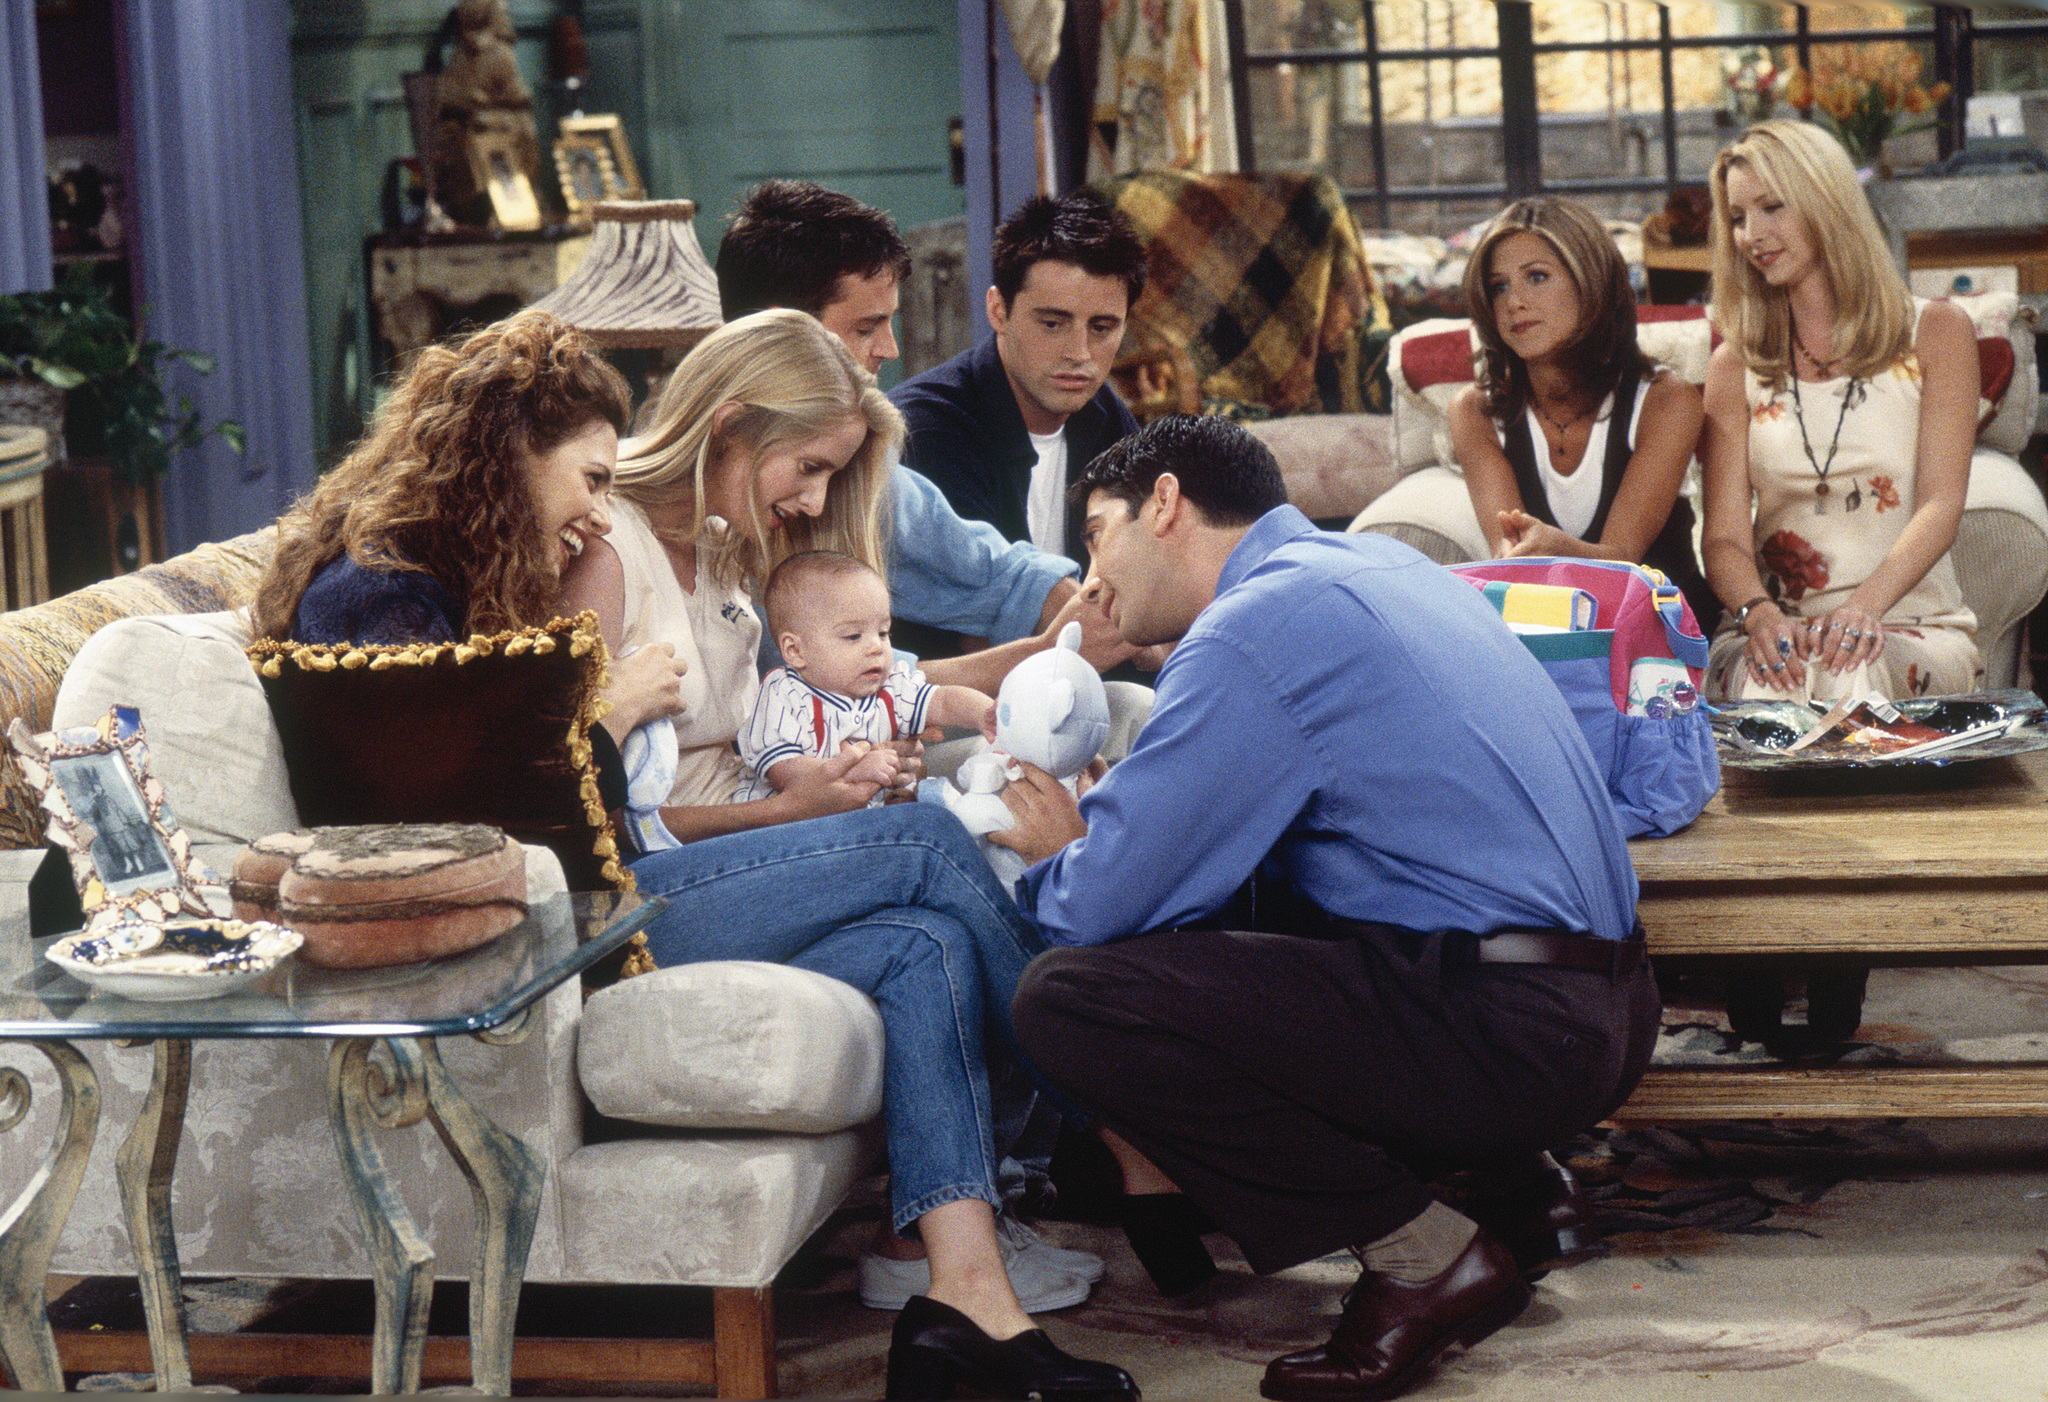 Friends: The One with the Breast Milk | Season 2 | Episode 2